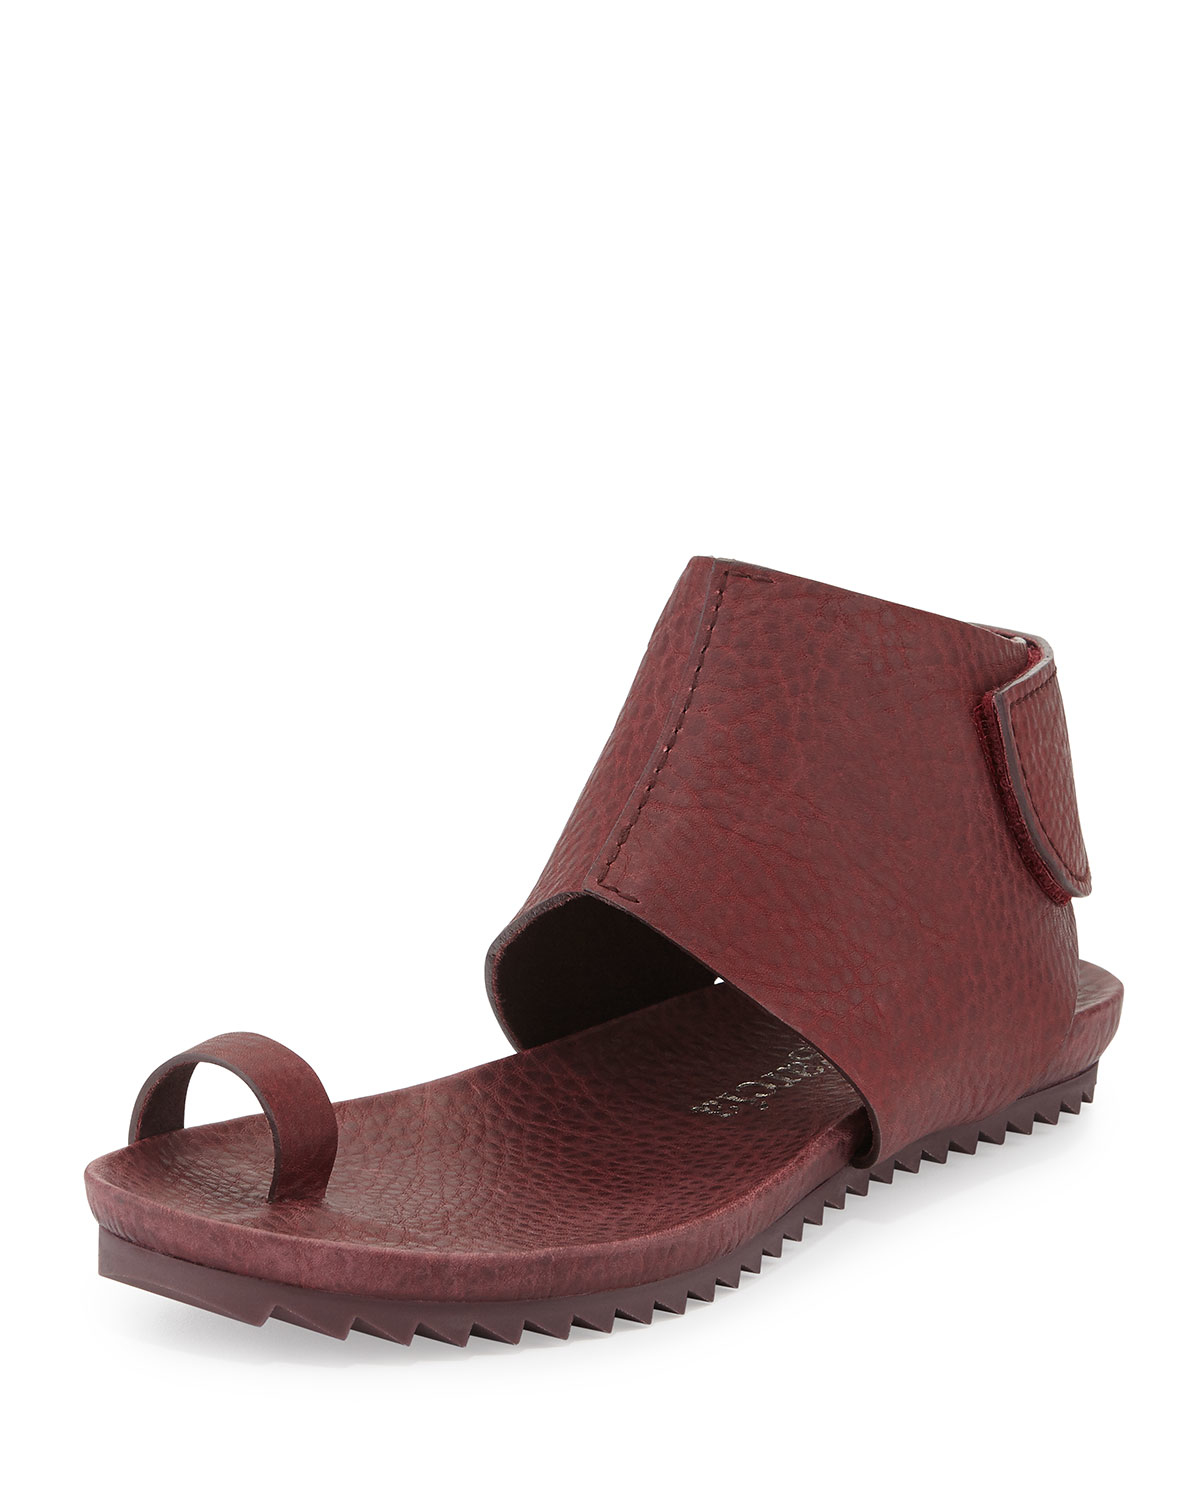 Pedro Garcia Vania Leather Toe Ring Sandals In Red Lyst